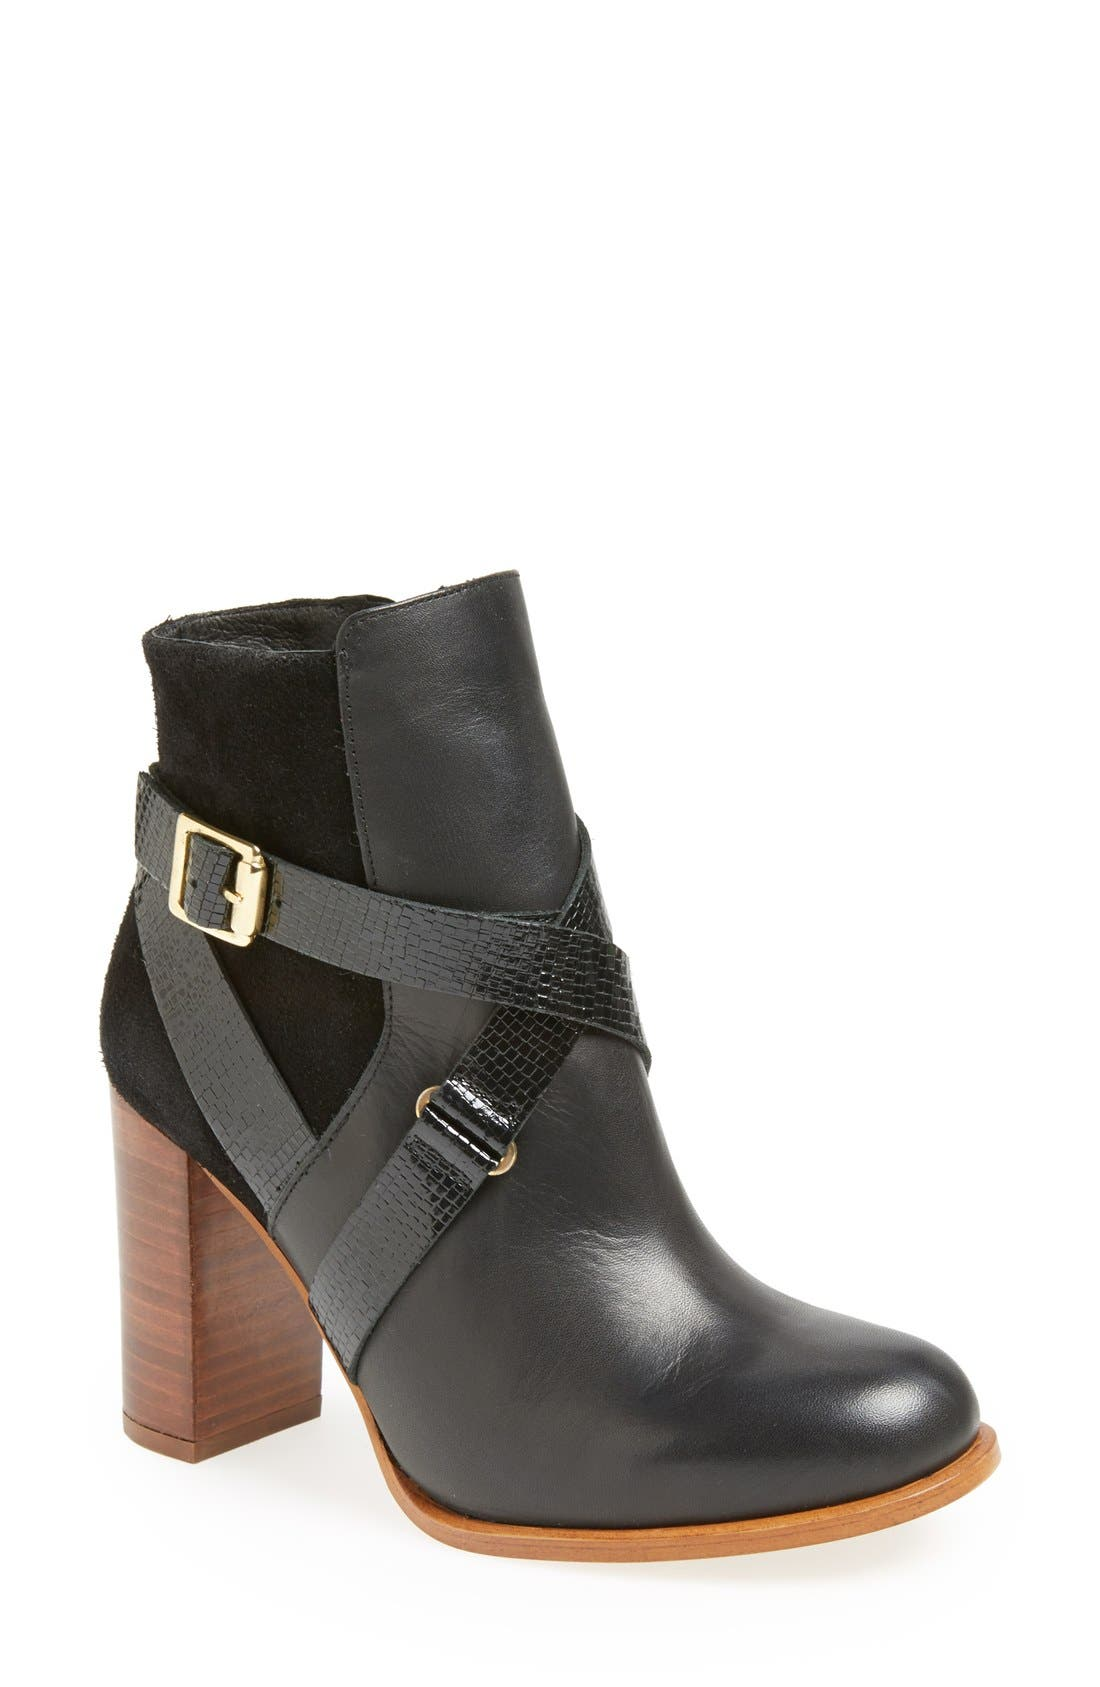 'Aroma' Ankle Boot,                             Main thumbnail 1, color,                             001